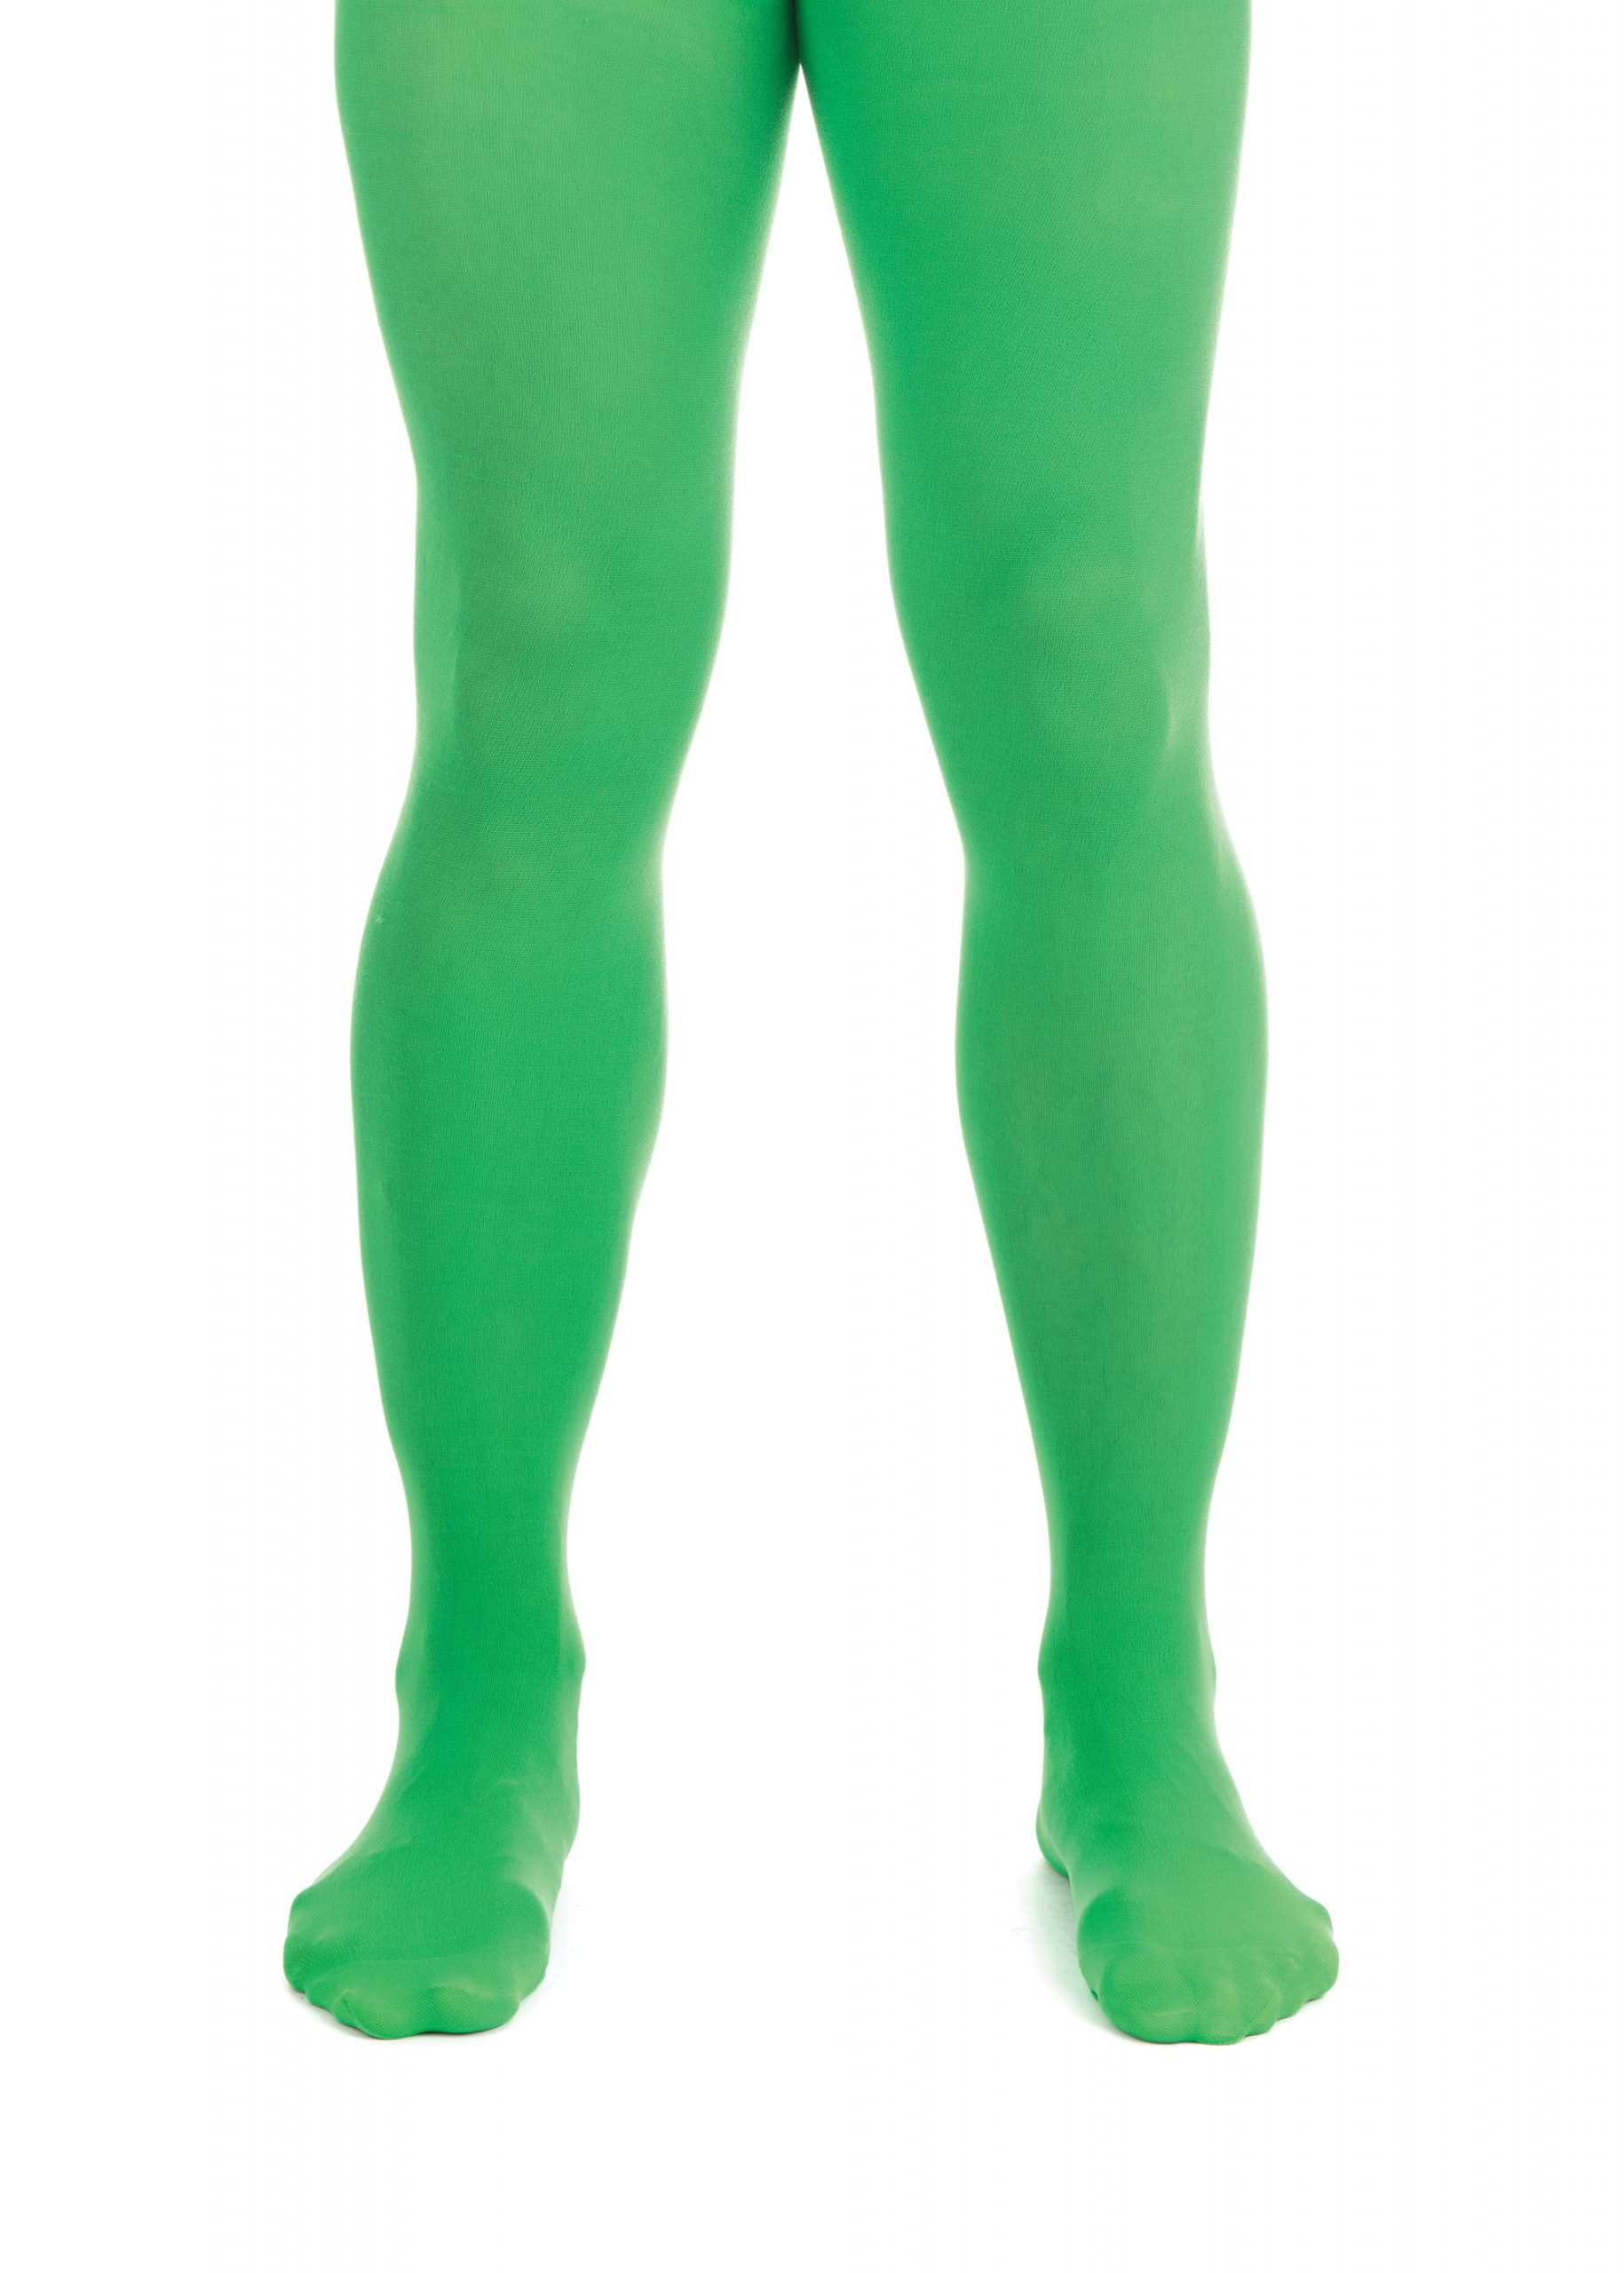 ACCESSORIES/TIGHTS & STOCKINGS/Tights Male - Green